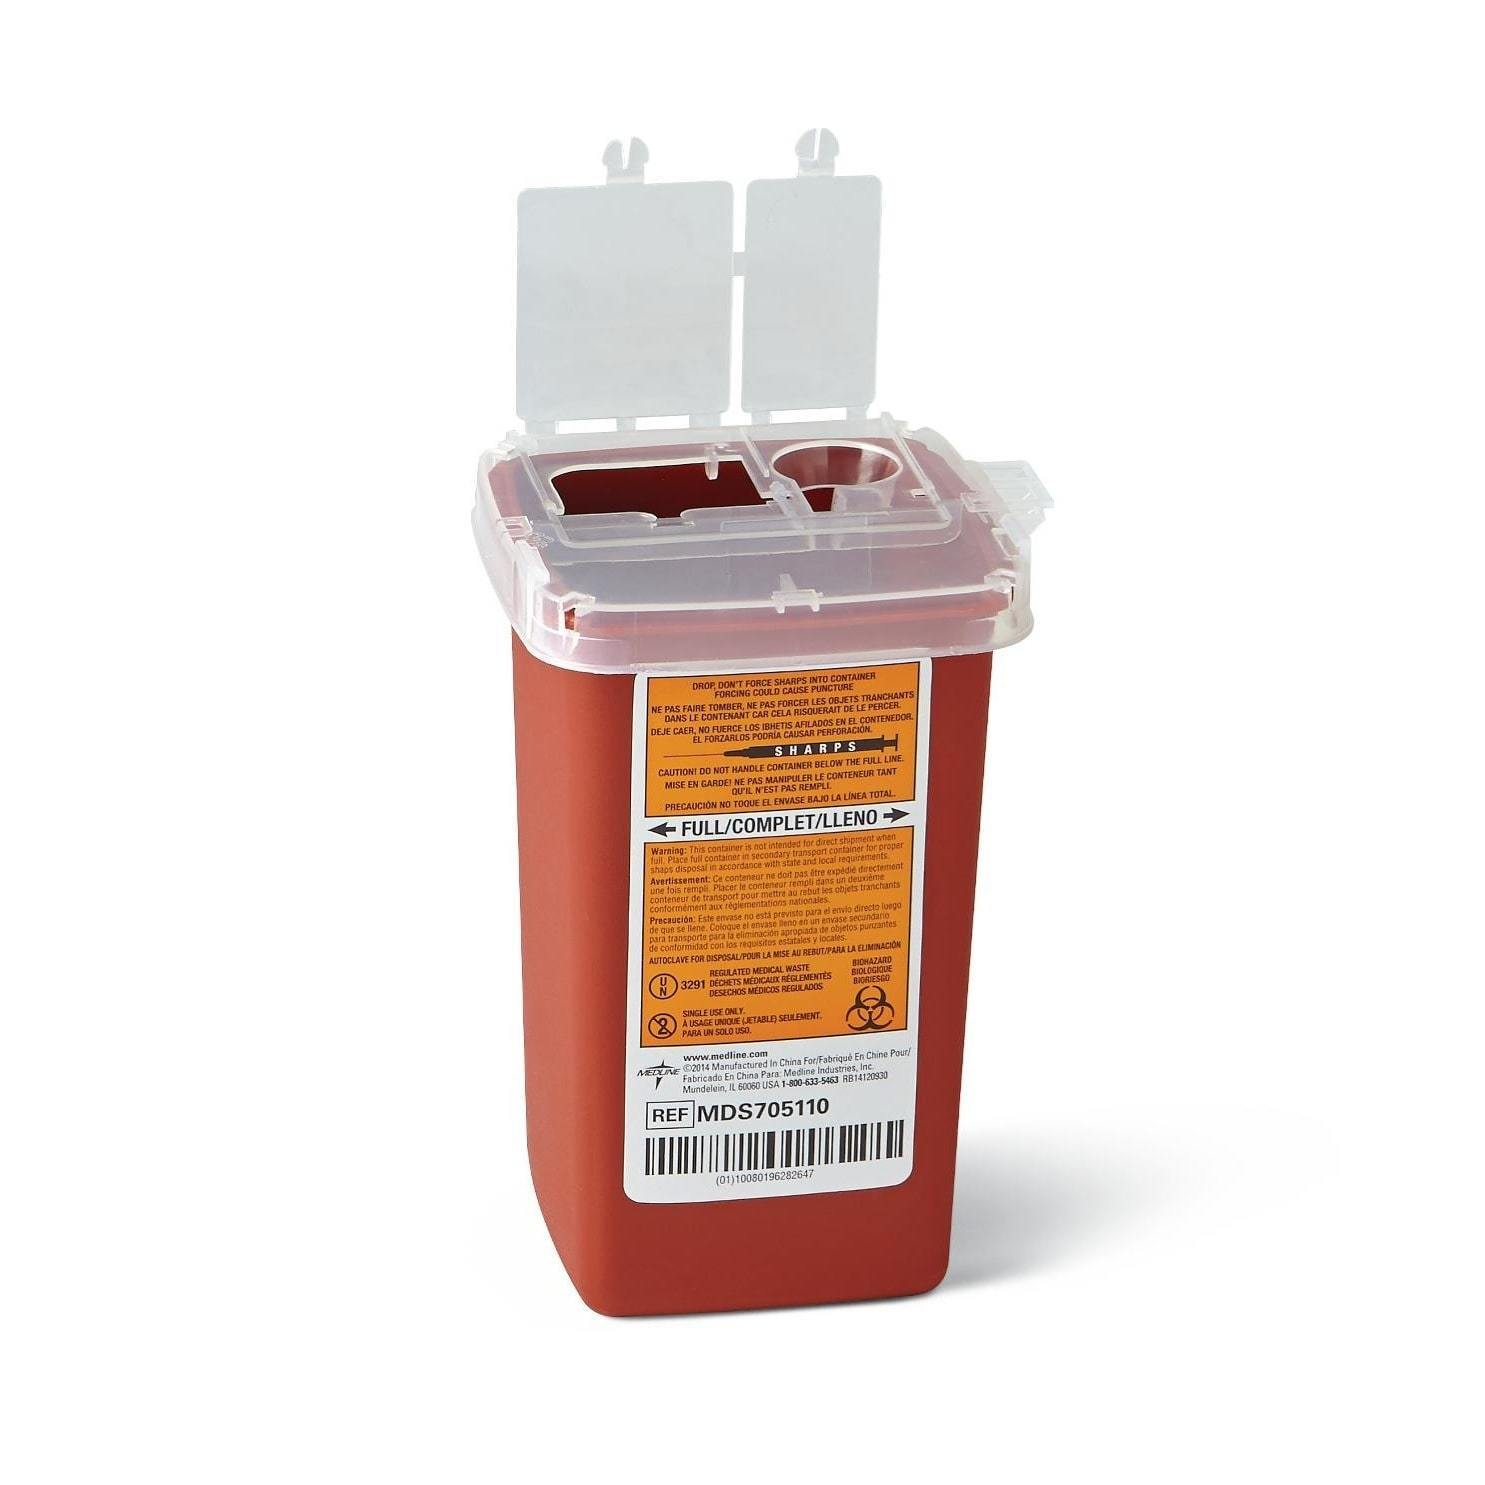 medline 1-quart Phlebotomy Biohazard Sharps Containers (P...